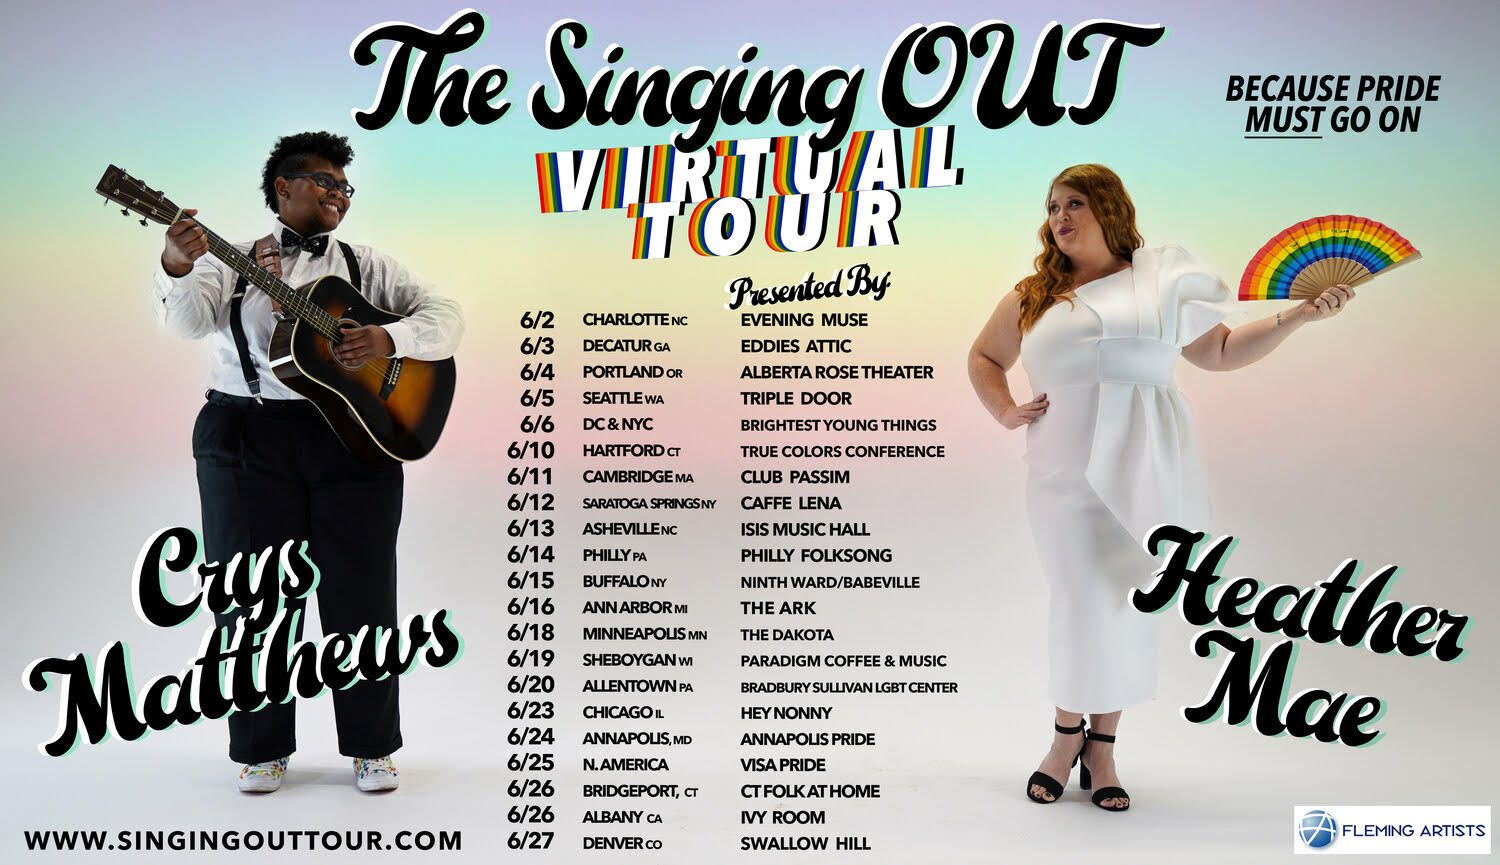 The Singing OUT Tour